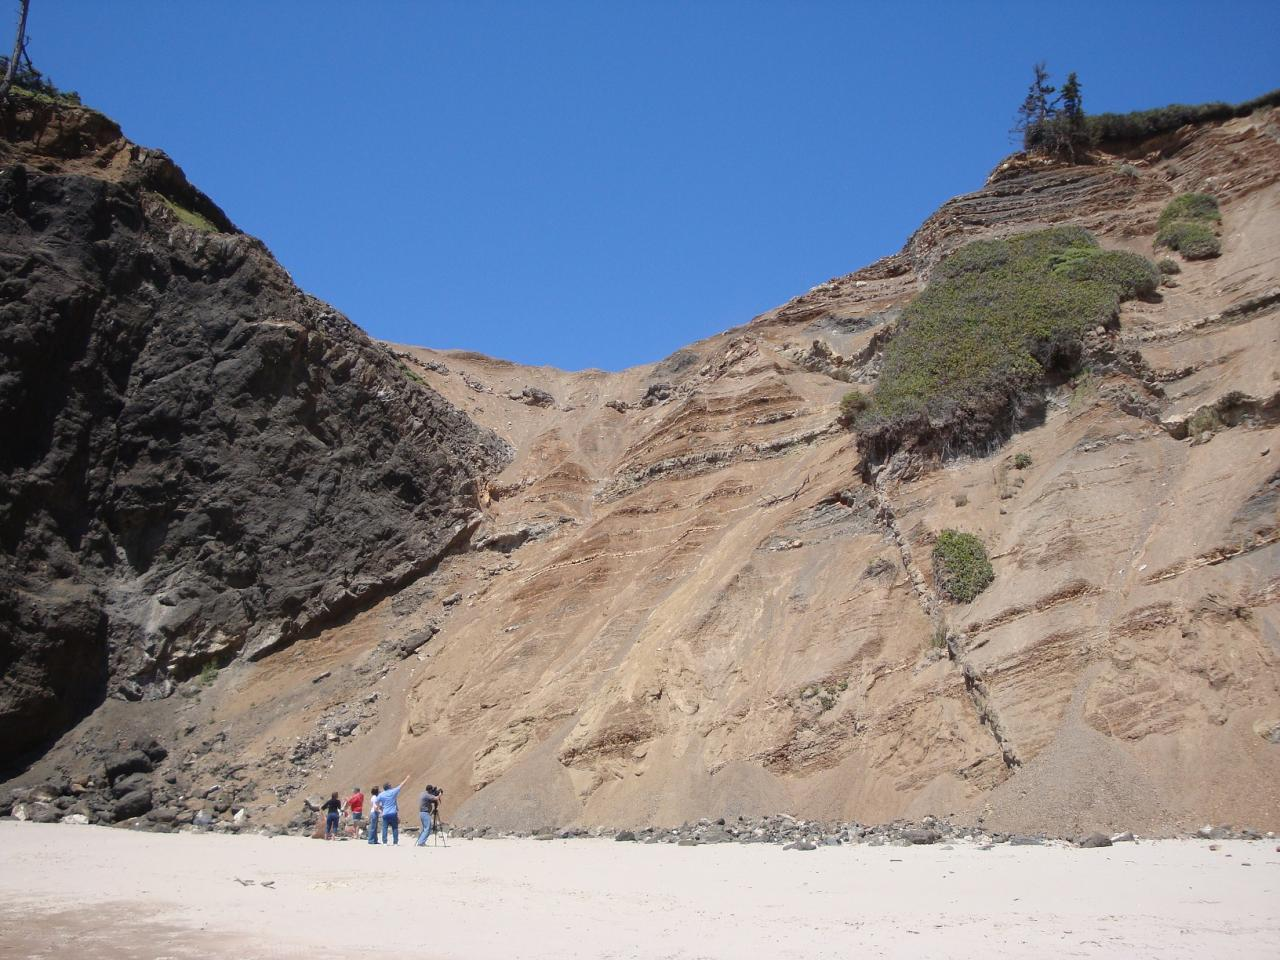 slide area at north end of Roads End beach where cliff rescue occurred the night before